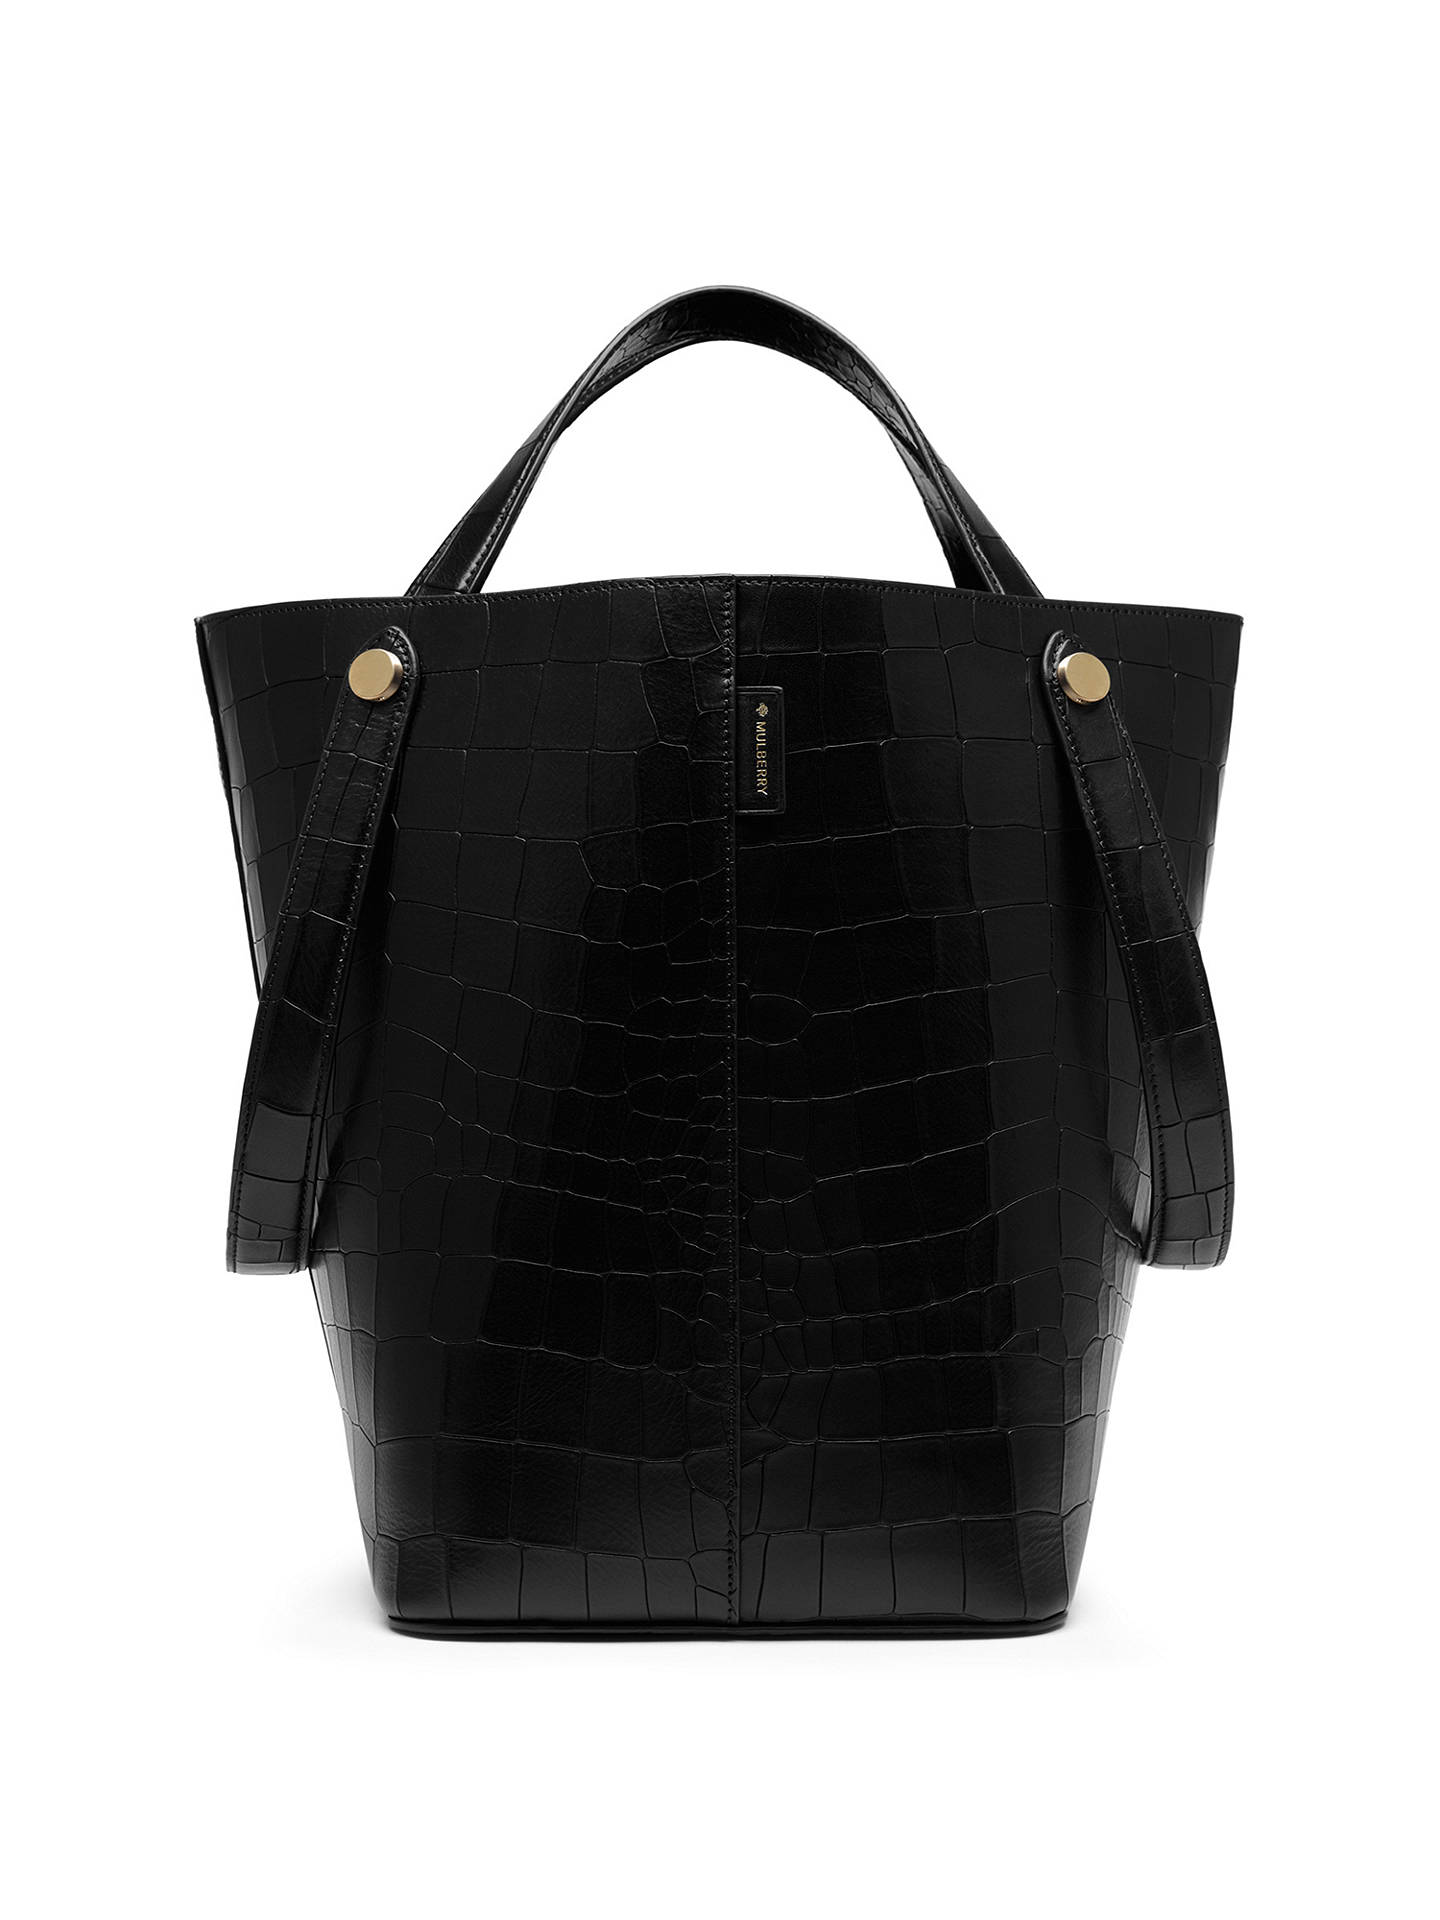 best price mulberry bayswater small leather tote bag b0856 6f453  authentic  buymulberry kite embossed tote bag black croc online at johnlewis 114f6  d8db1 dd872b4a7c314